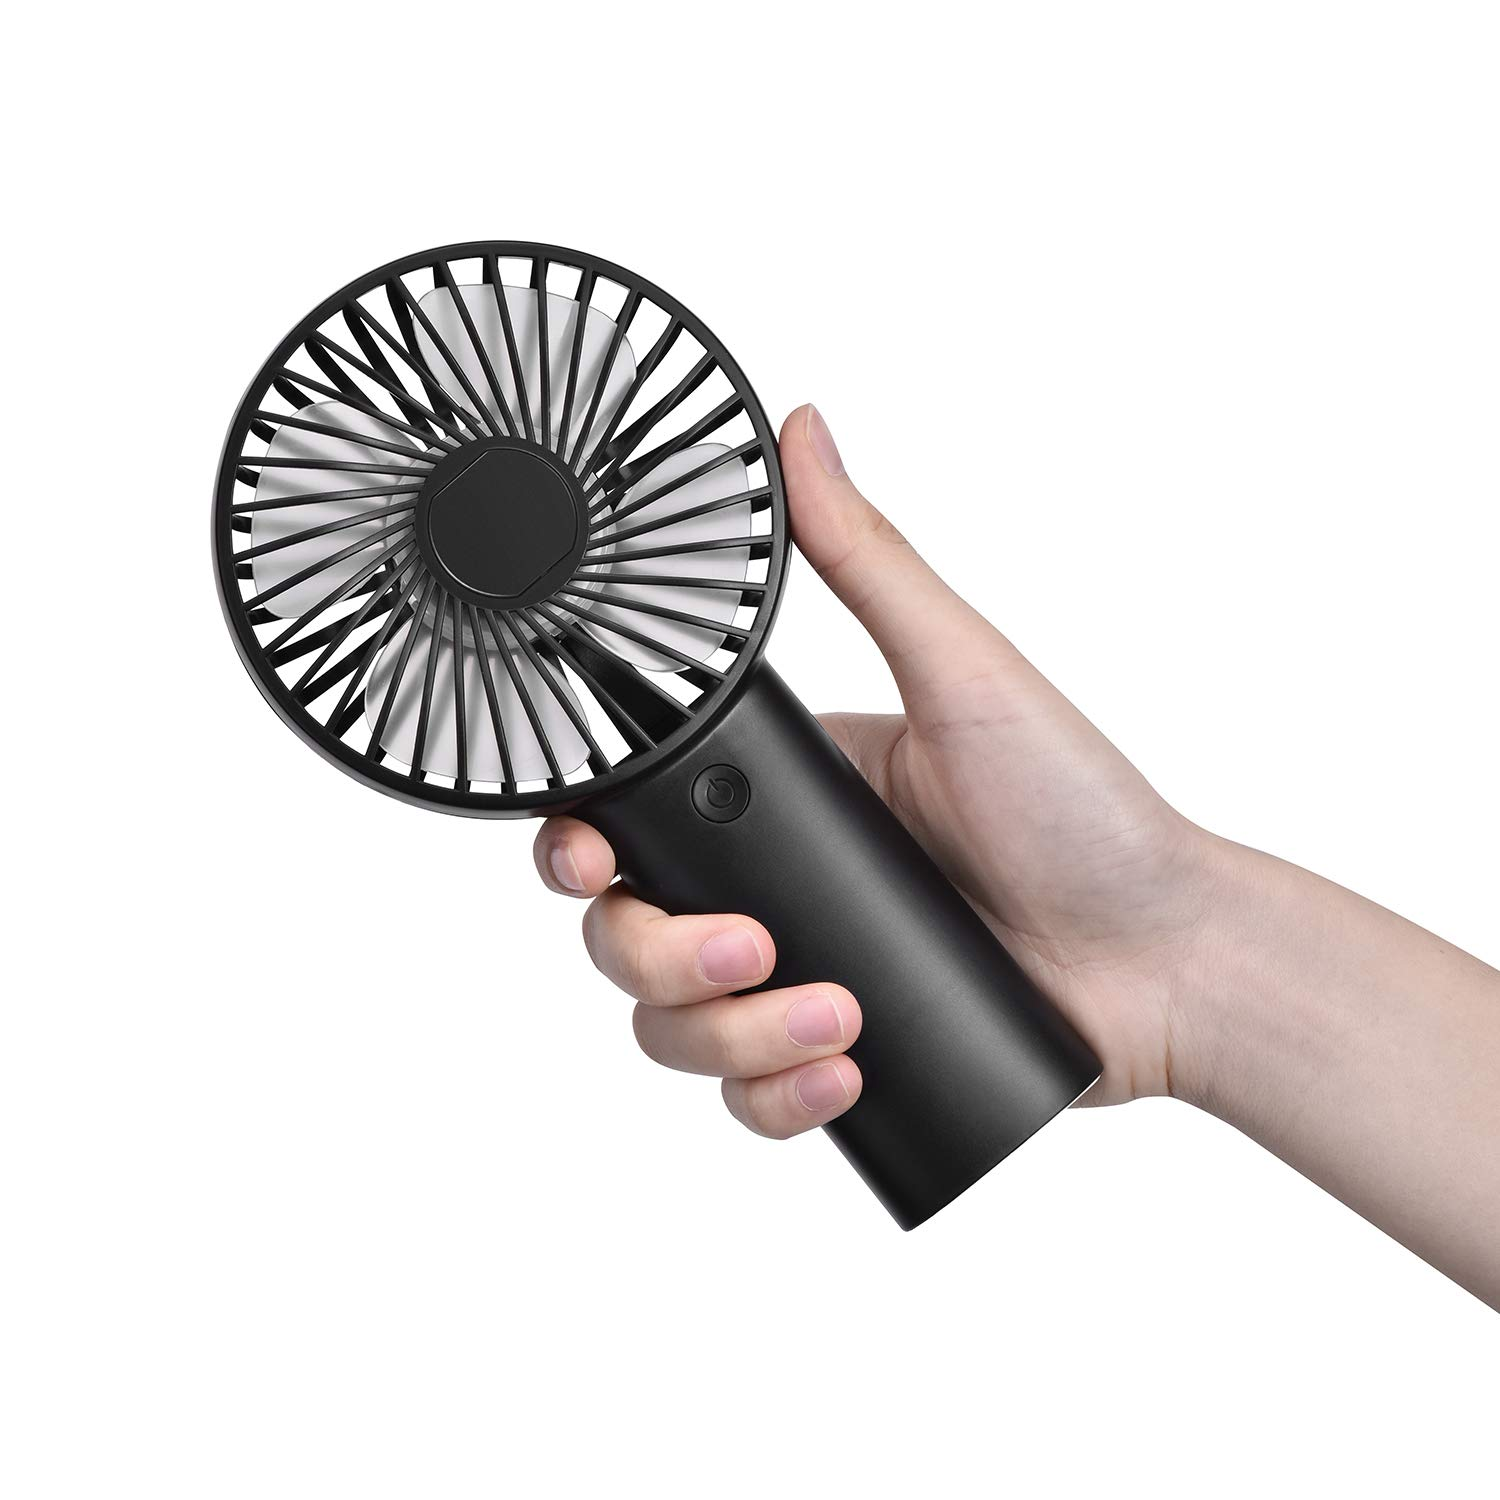 Mini Handheld Fan Portable Fan,USB 4000mAh Battery Operated Rechargeble Hand Held Fan,8-18 Working Hours with 3 Speed Adjustable for Home Office Traveling Black